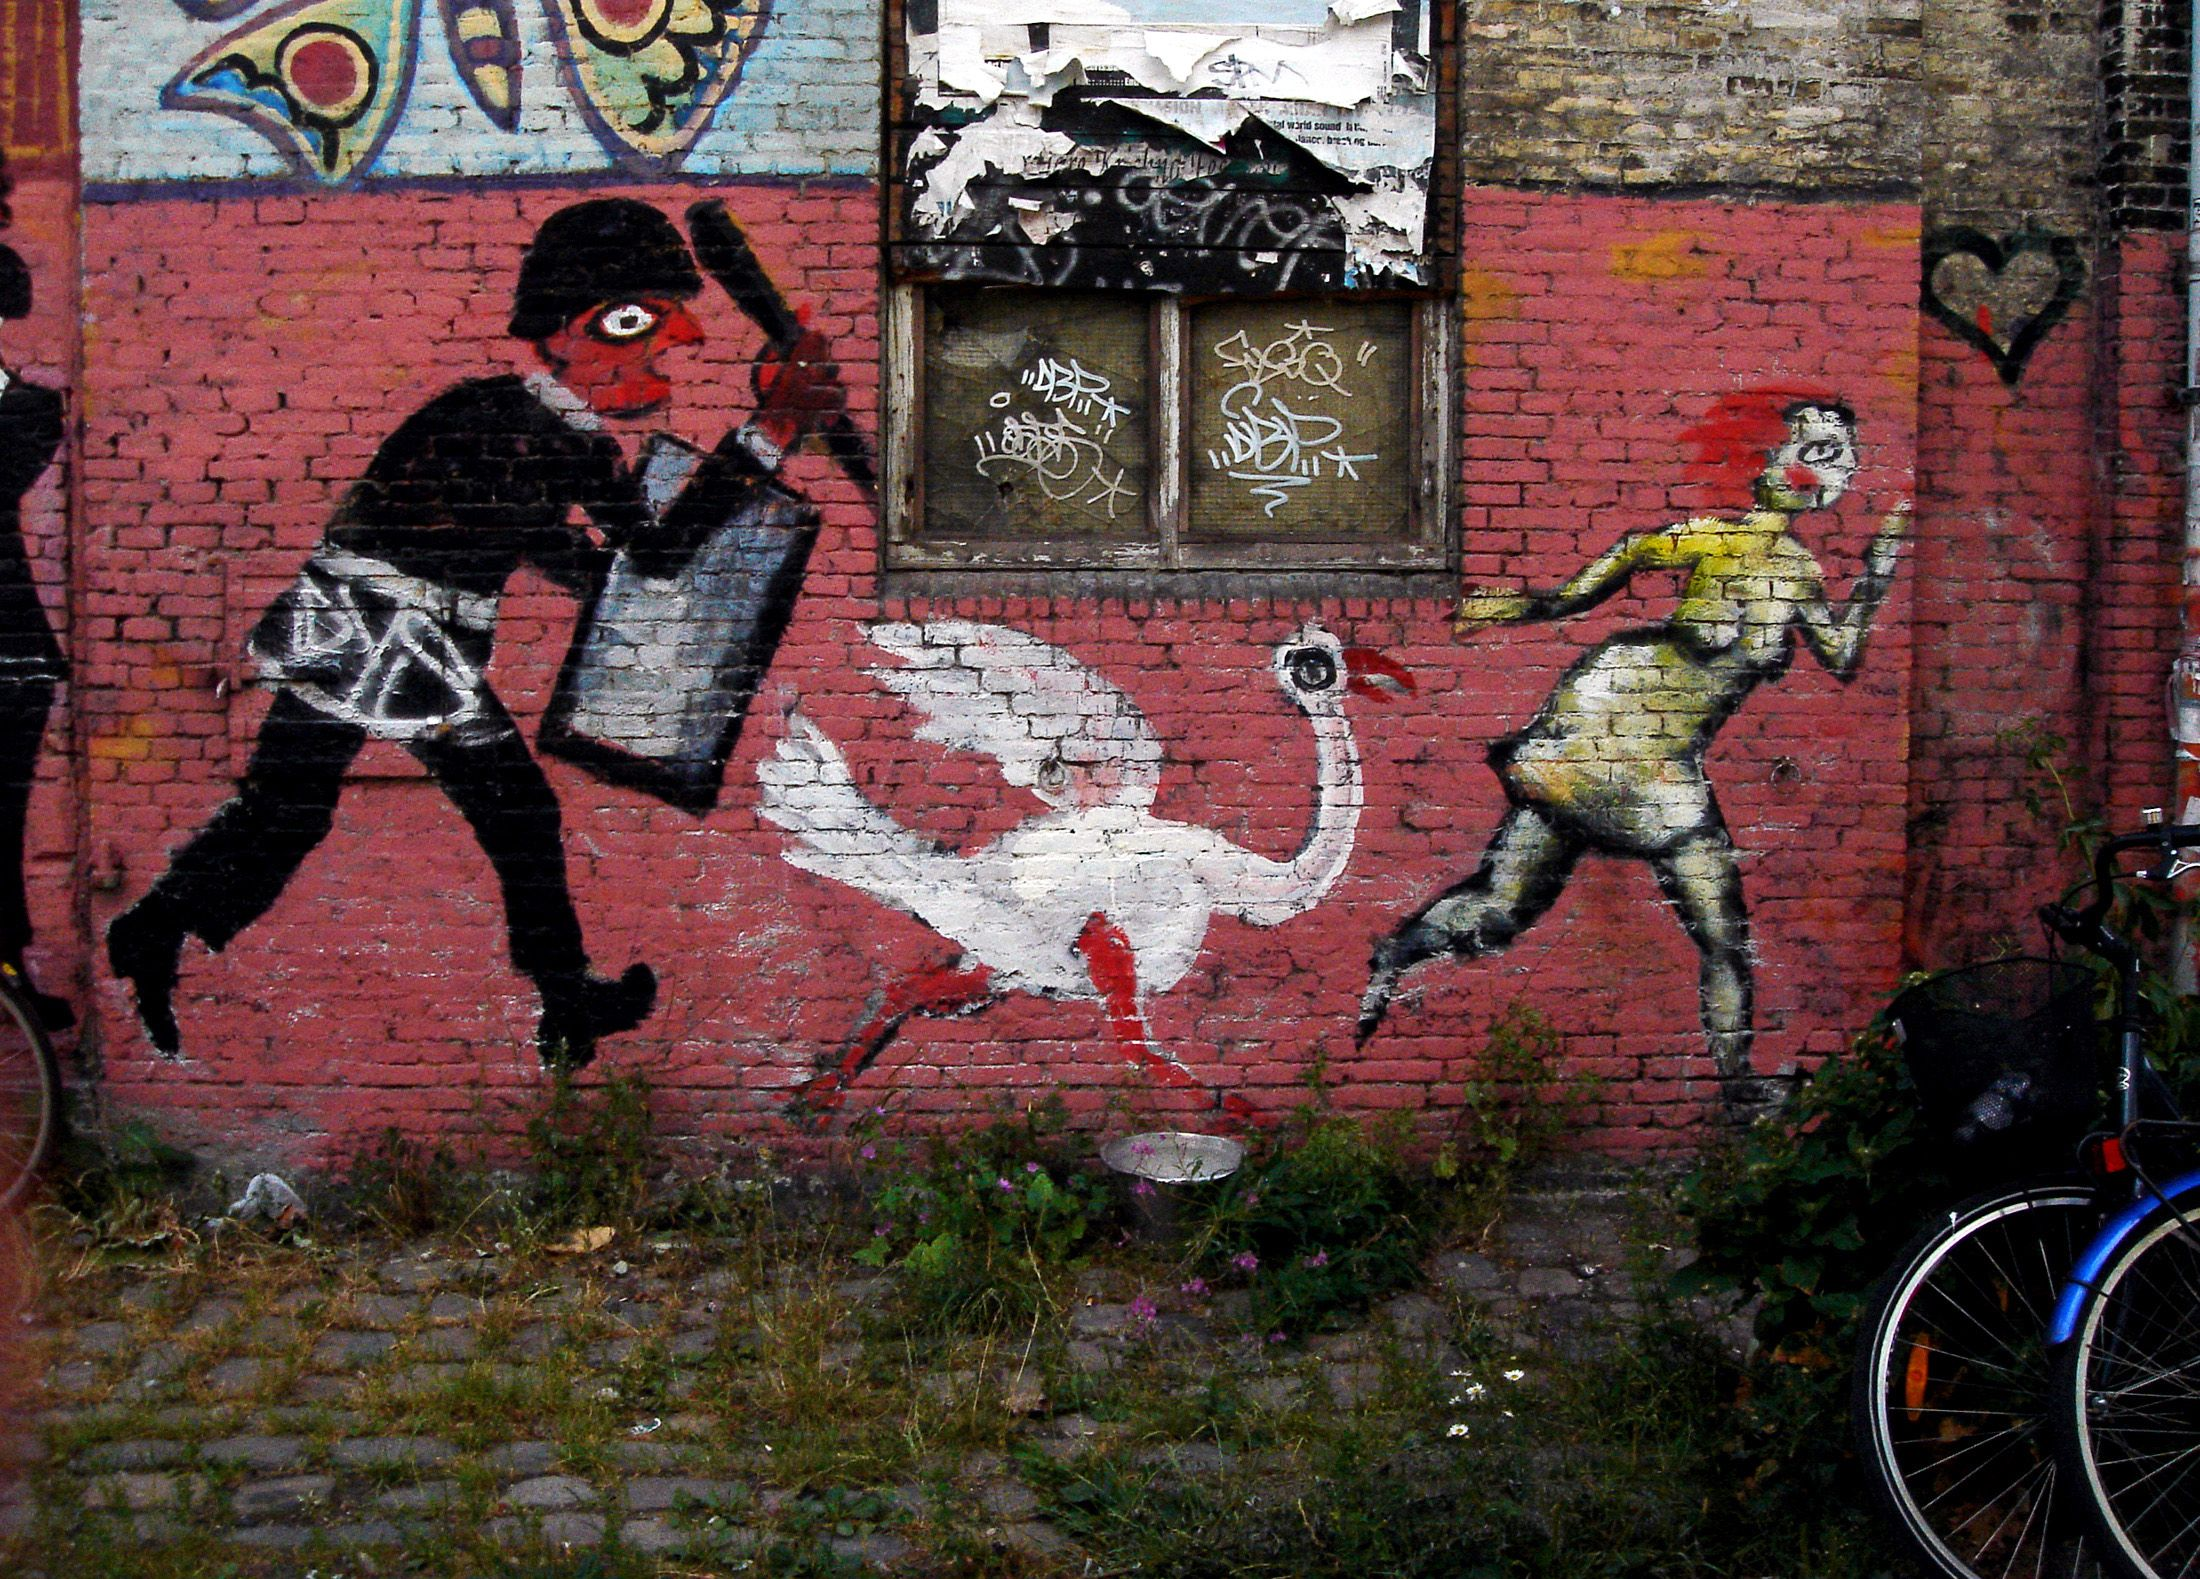 A painting of a police raid on a wall in Christiania, Denmark